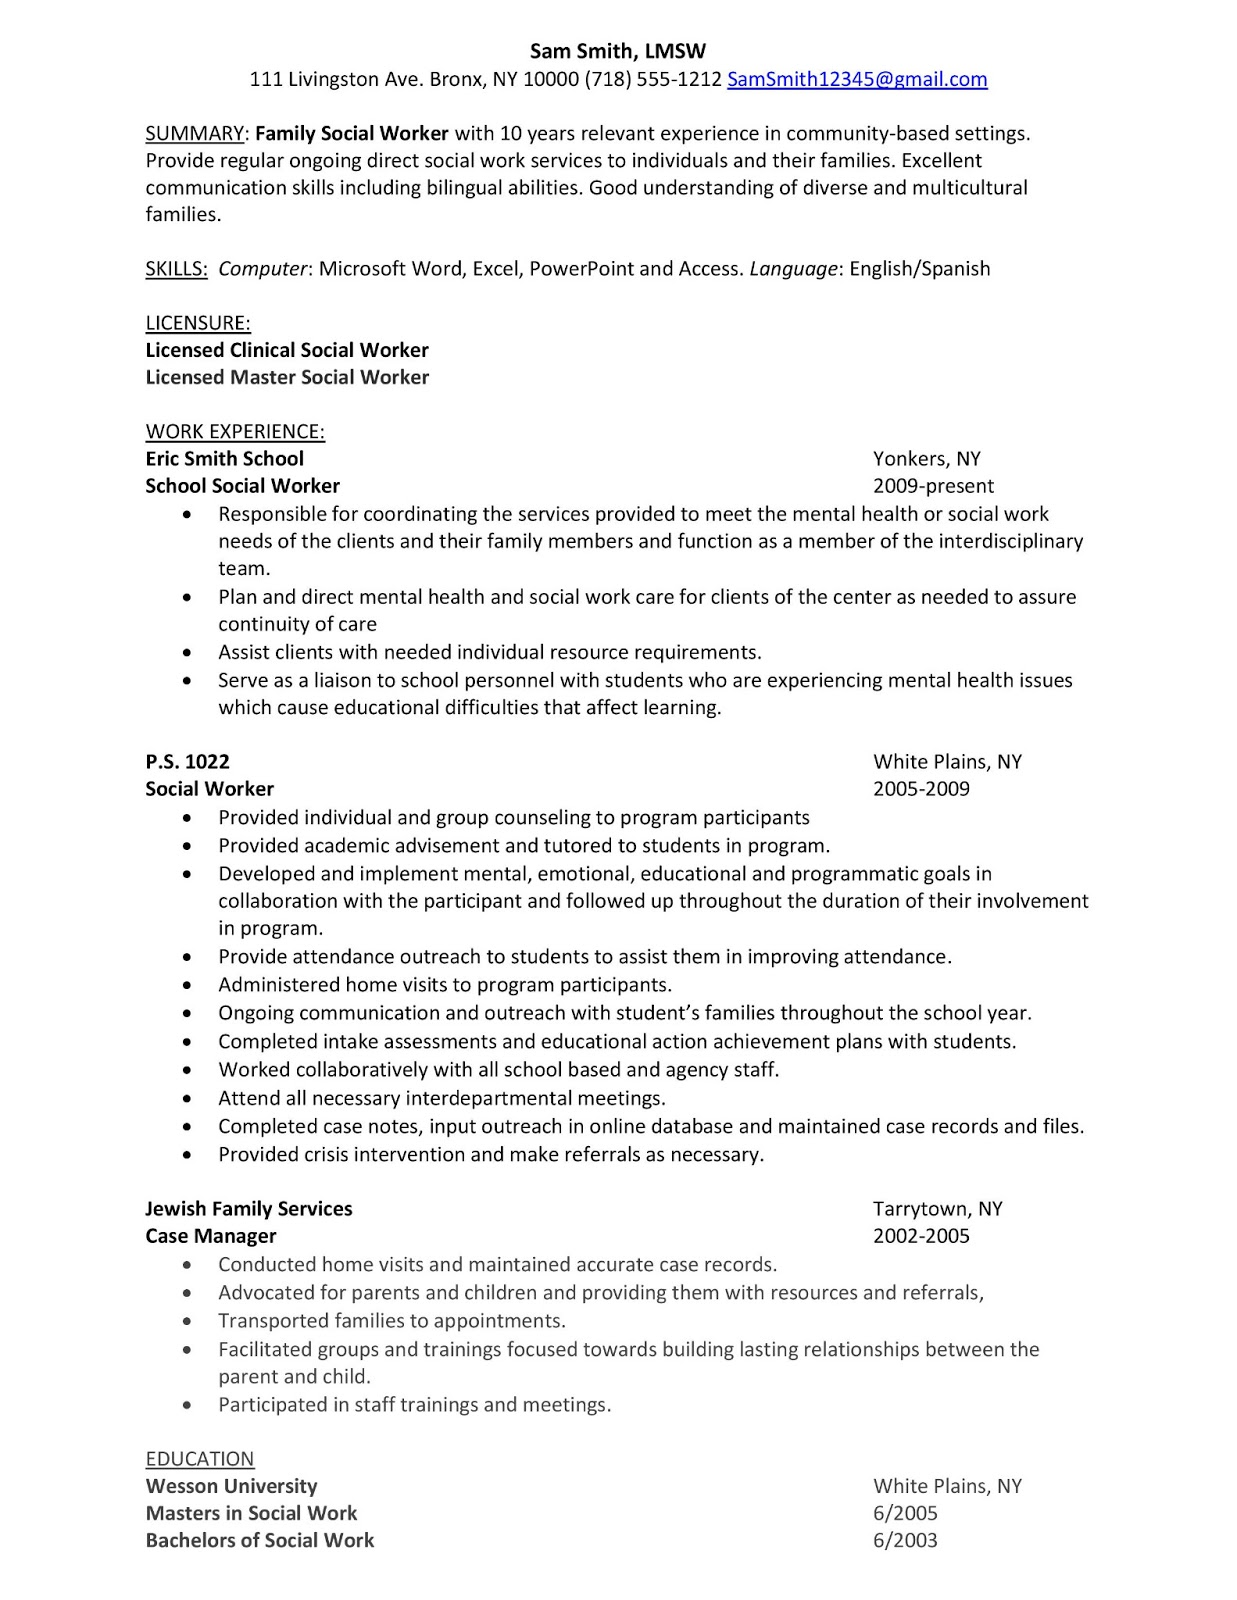 a on homework the five year resume a career planning exercise parent and child relationships in romeo and juliet essays ipgproje com relationship between parent and child